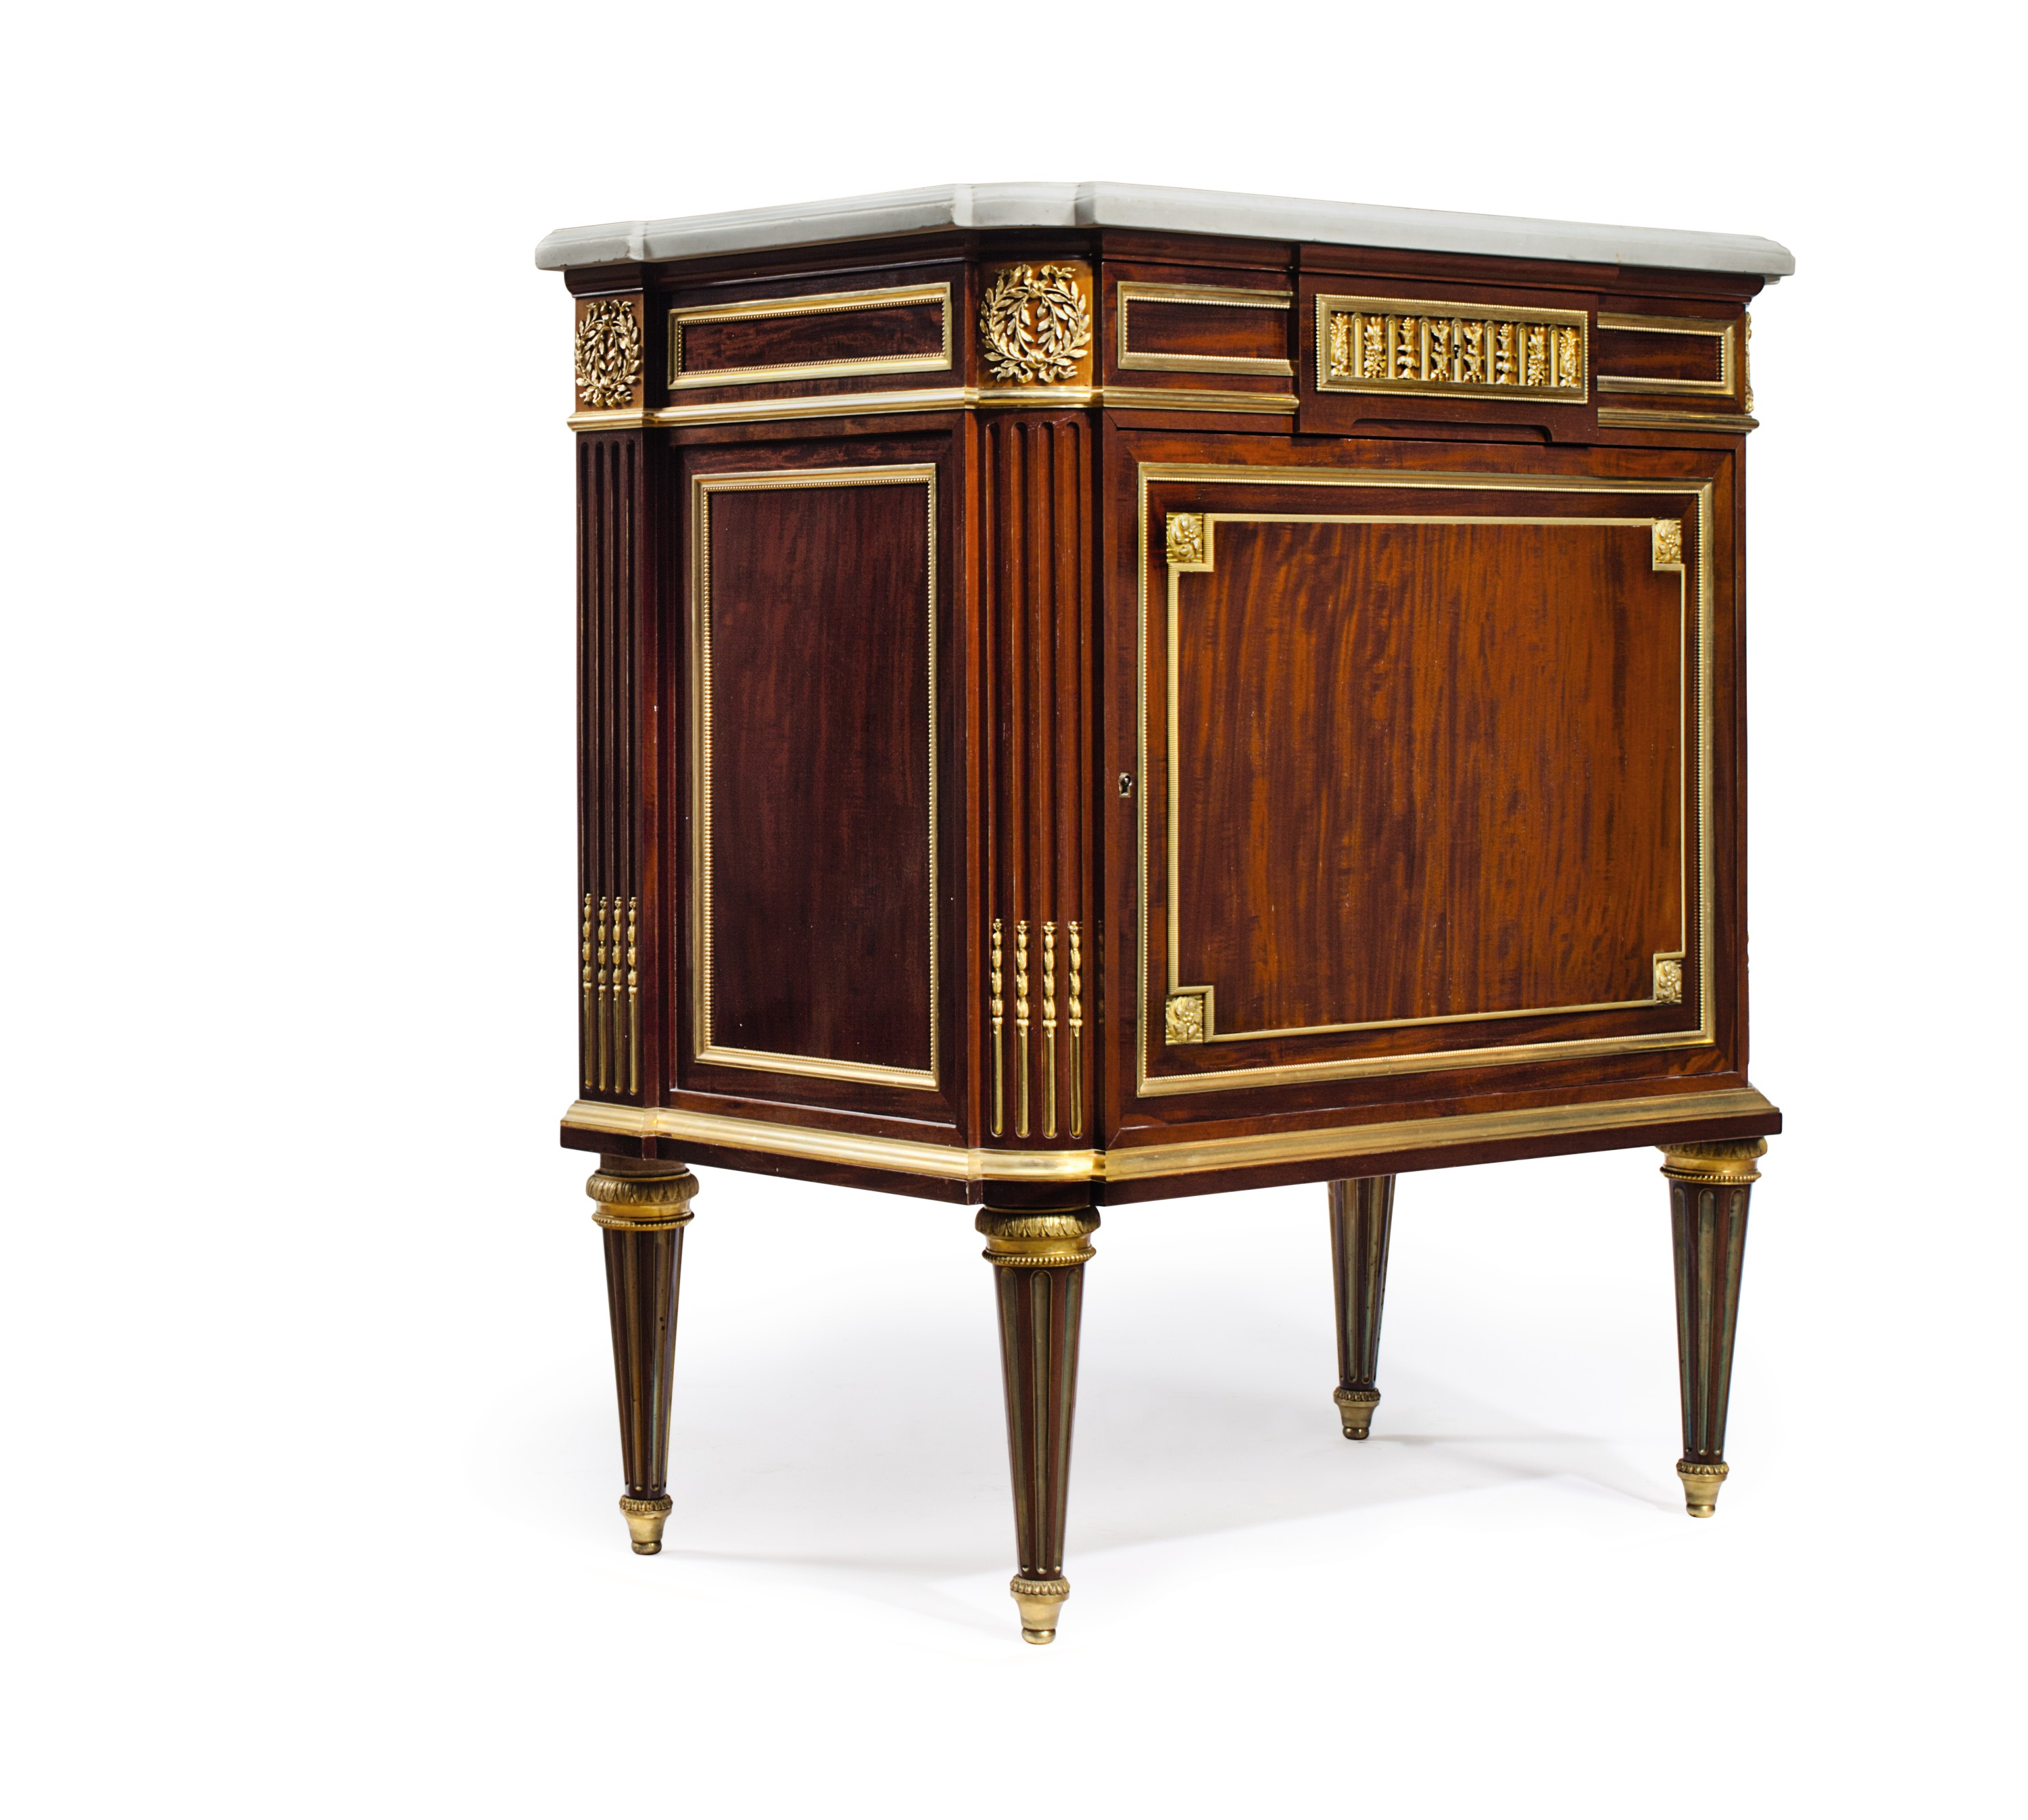 A FRENCH ORMOLU-MOUNTED PLUM-PUDDING MAHOGANY SIDE-CABINEt